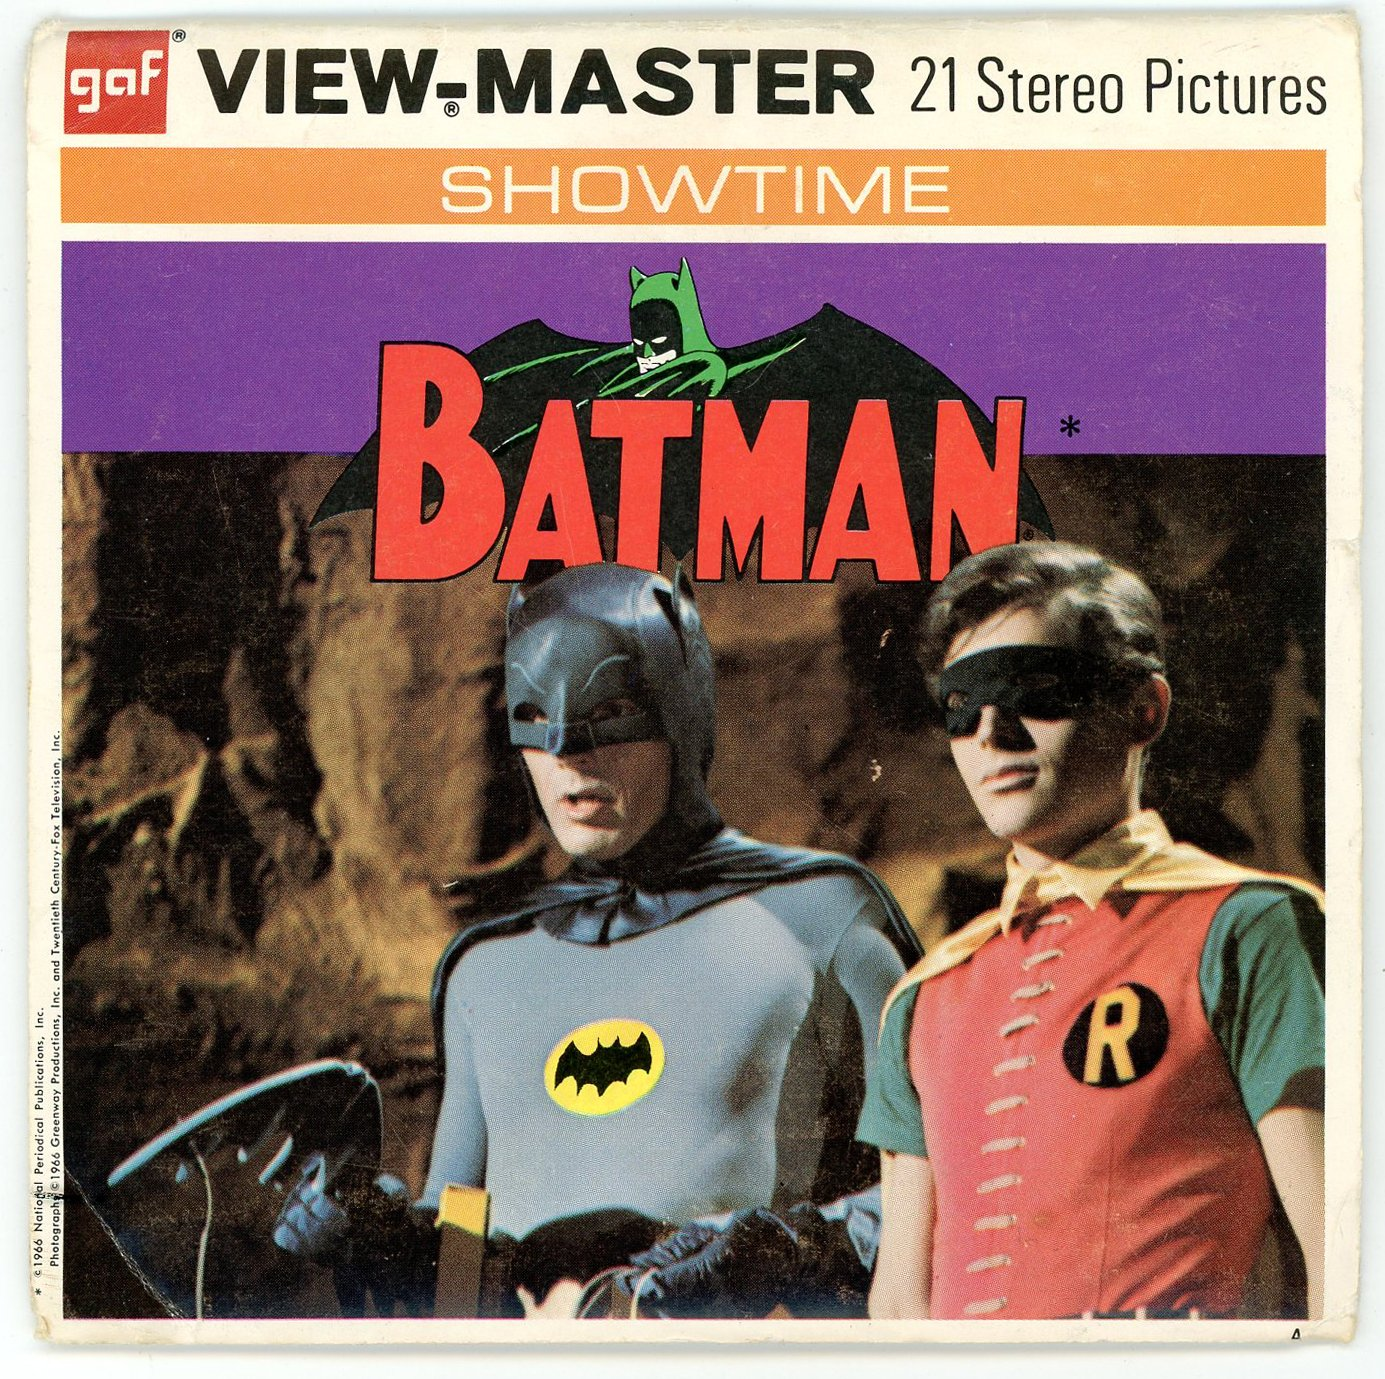 BATMAN View-Master 3 Reel Set - 21 3d Images - Adam West by View Master (Image #1)